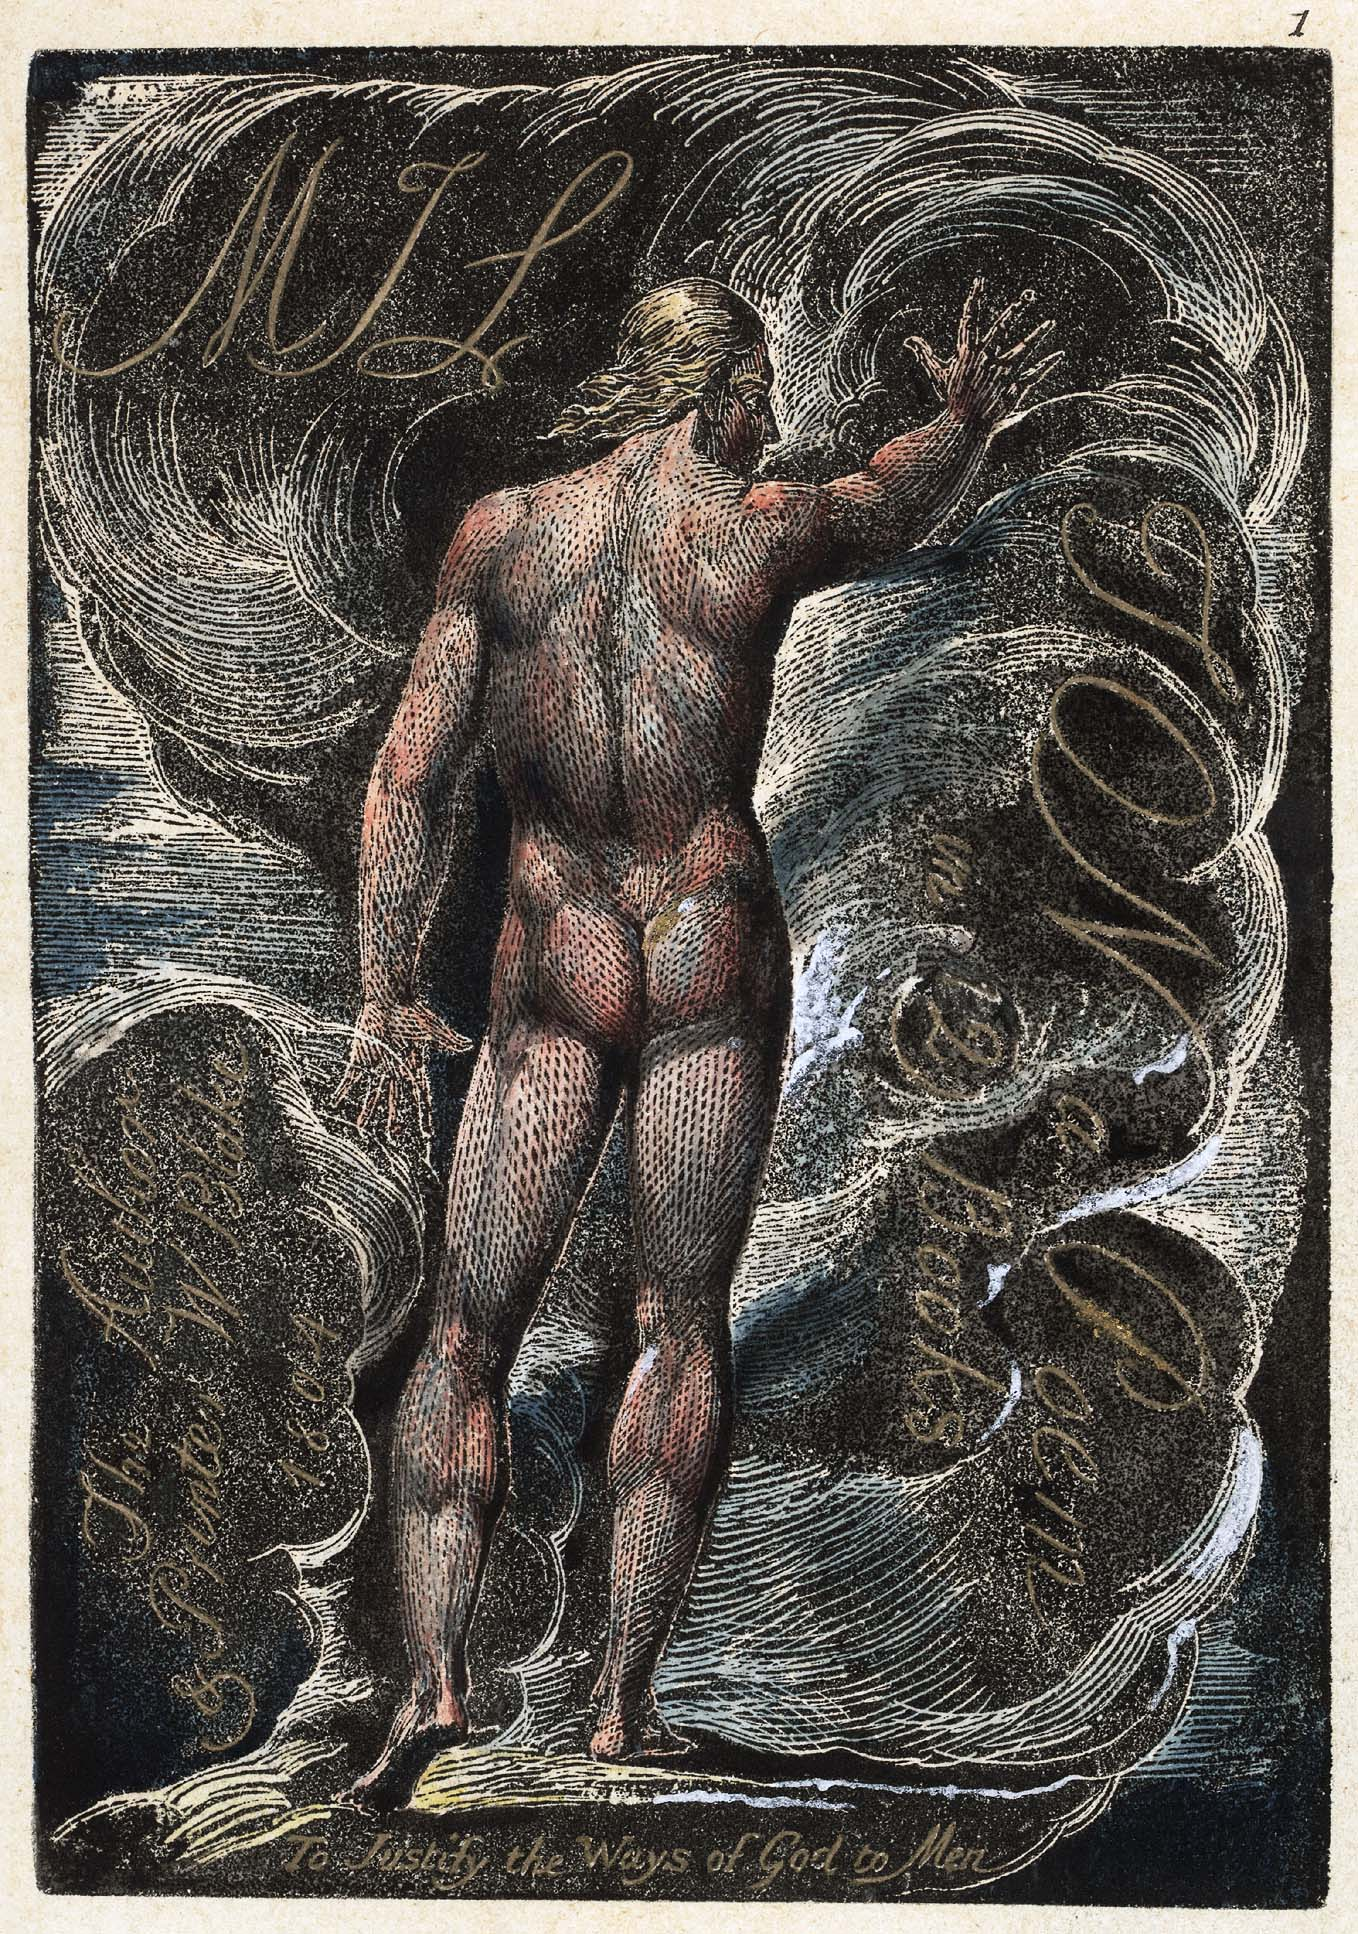 1 MIL TON a Poem in 12 Books The Author & Printer W Blake 1804 To Justify the Ways of God to Men